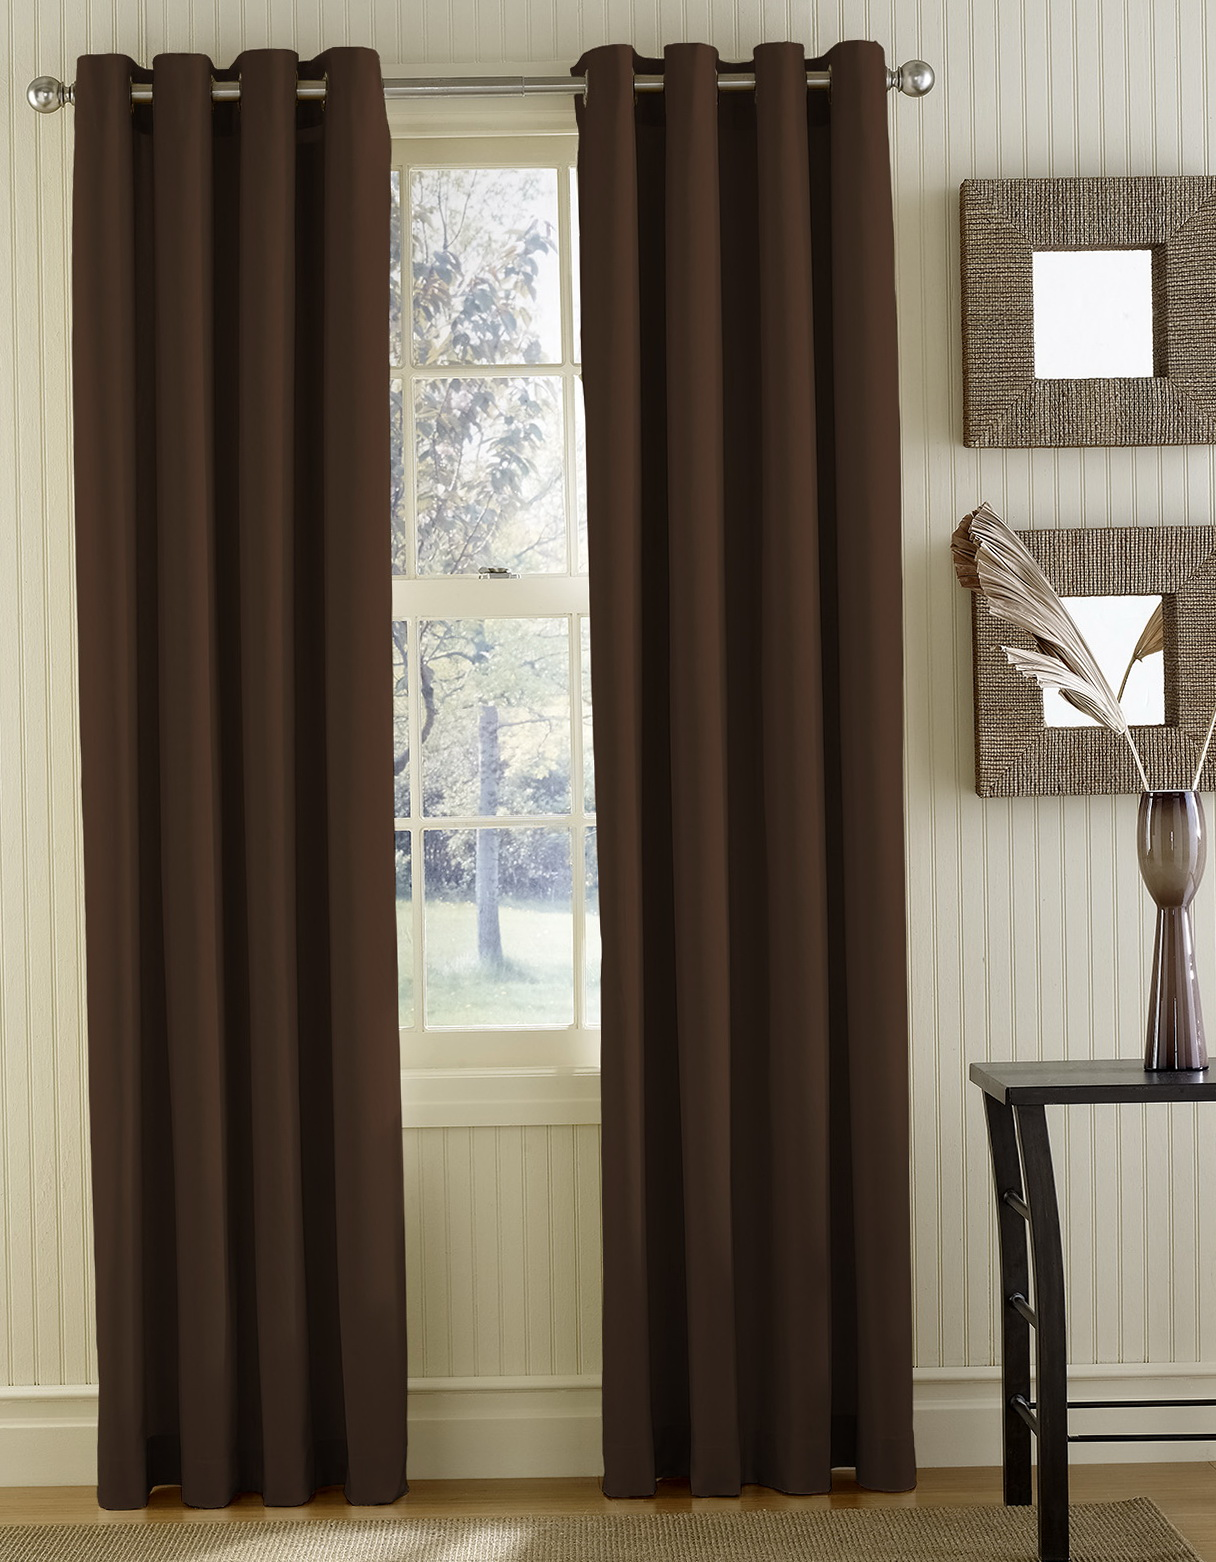 Modern window drapes 28 images modern furniture Contemporary drapes window treatments